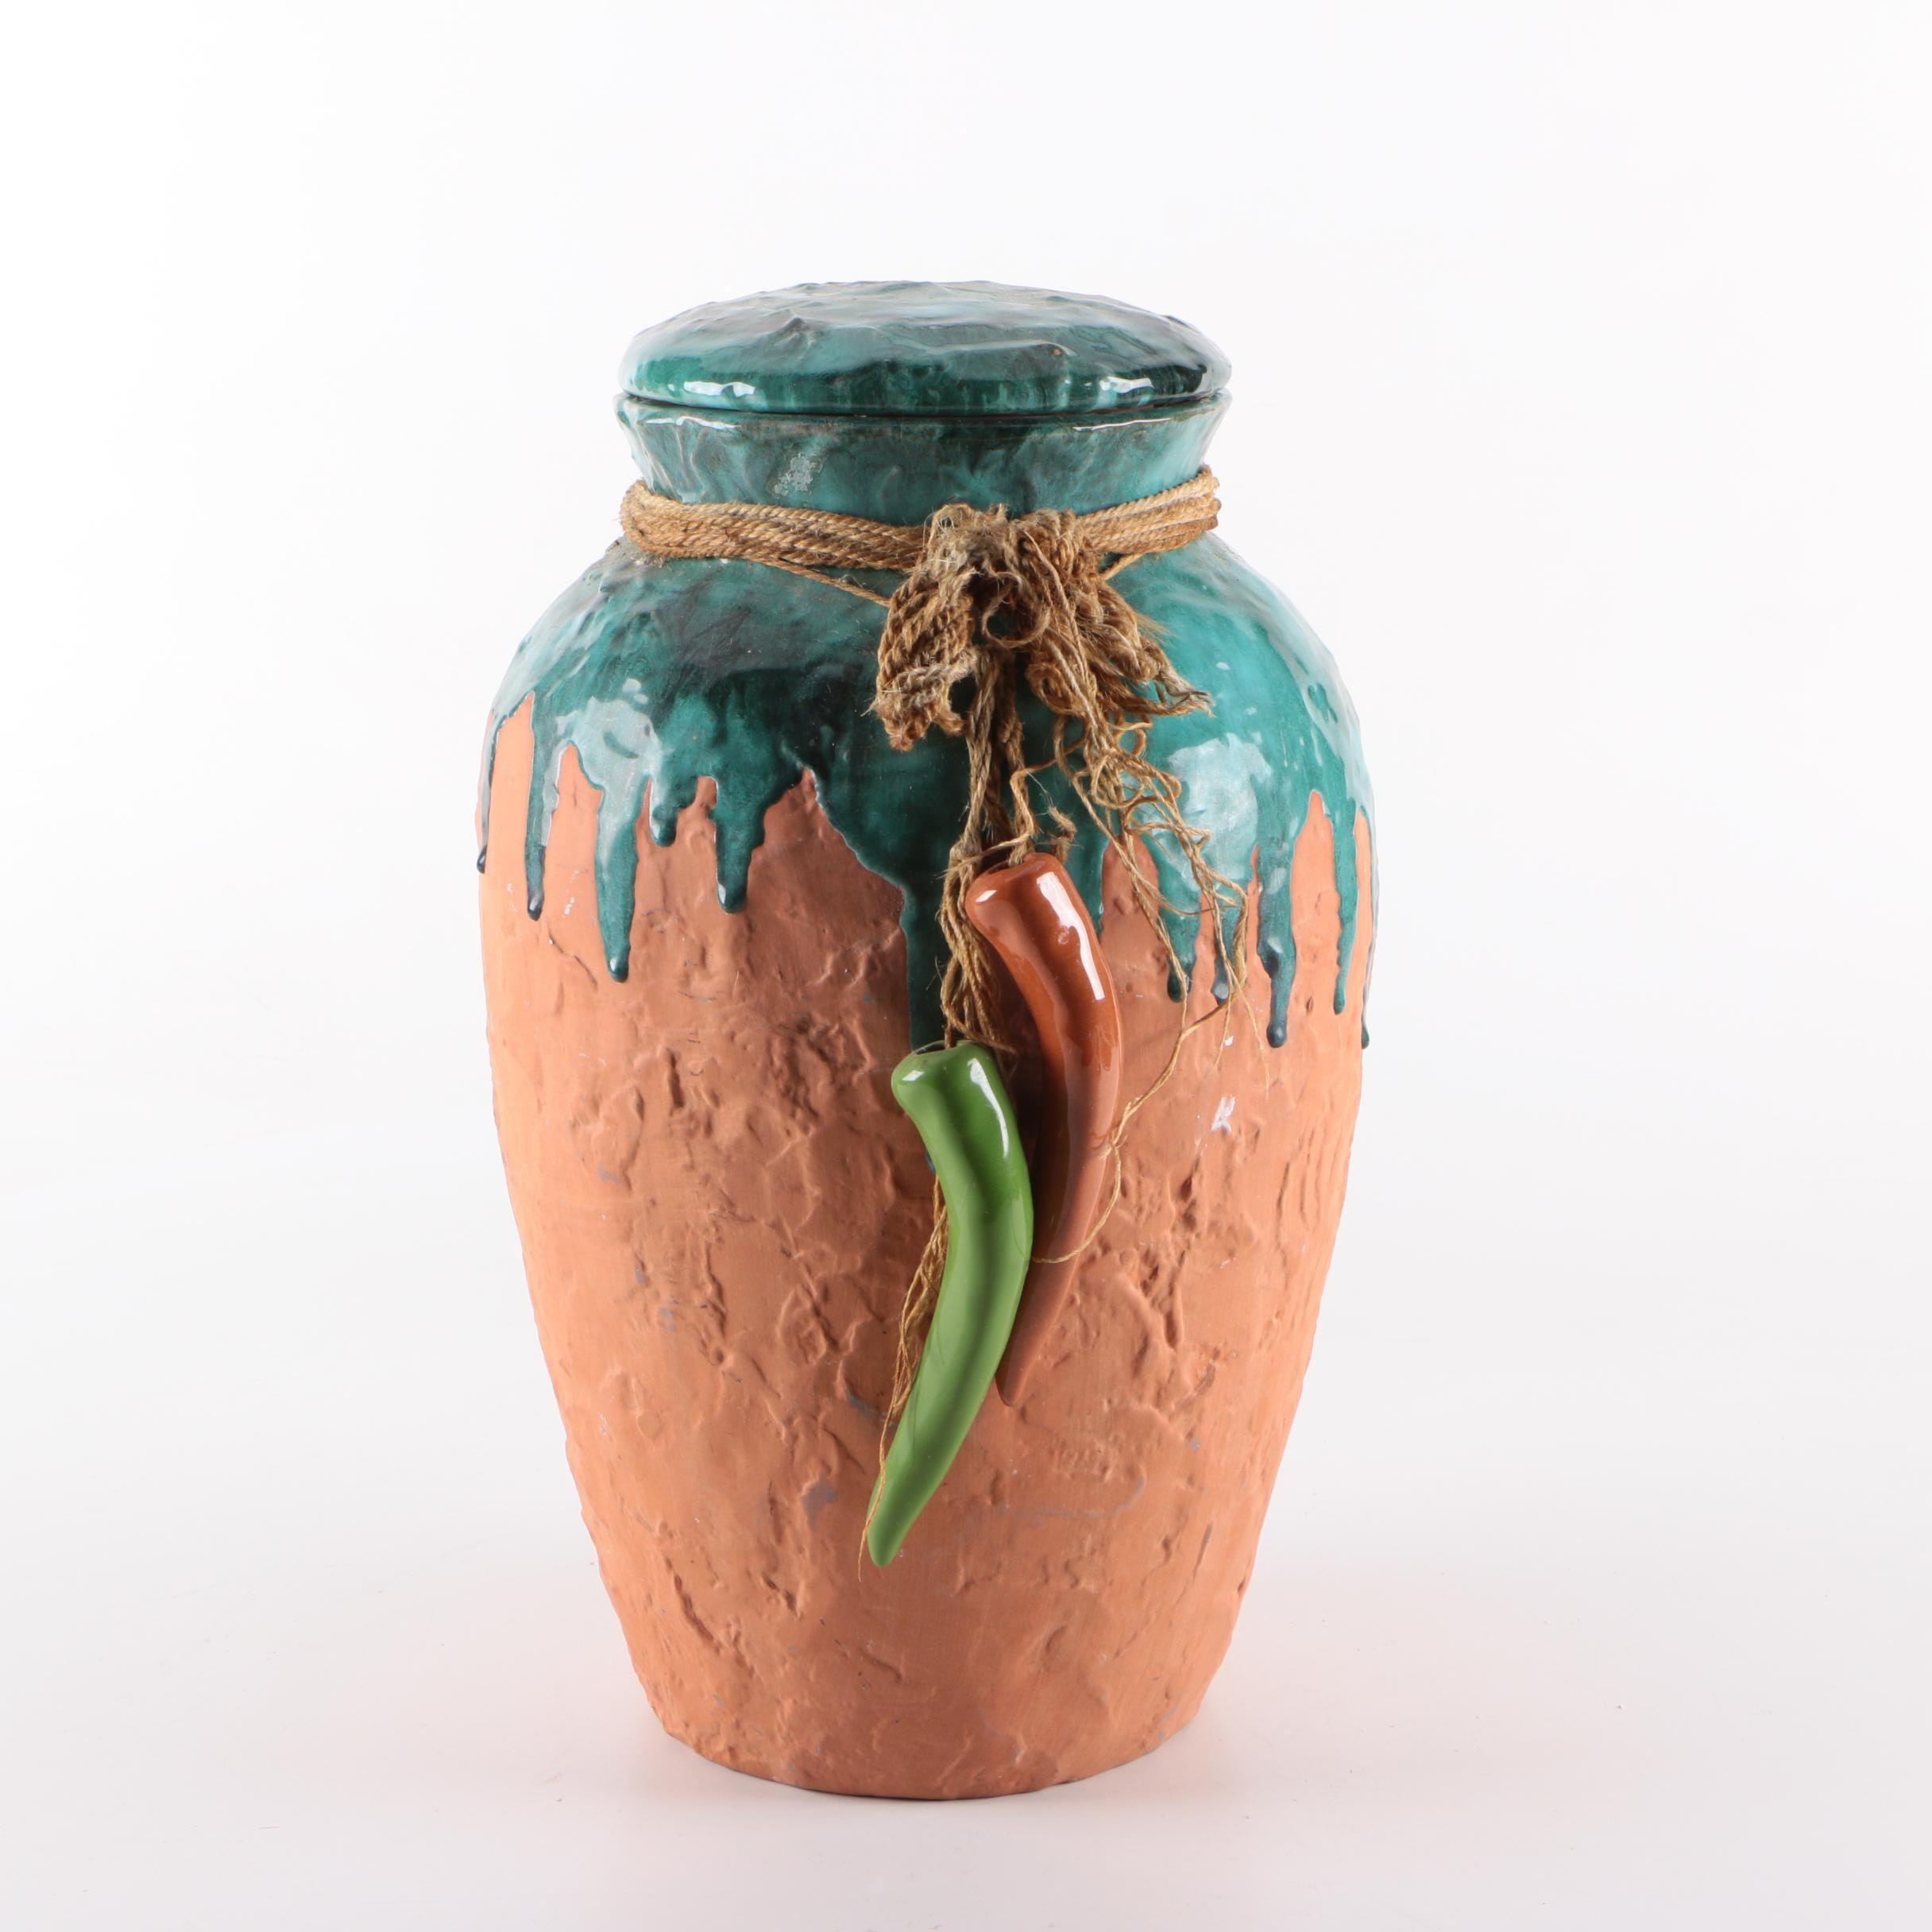 Chili Pepper Artisan Urn